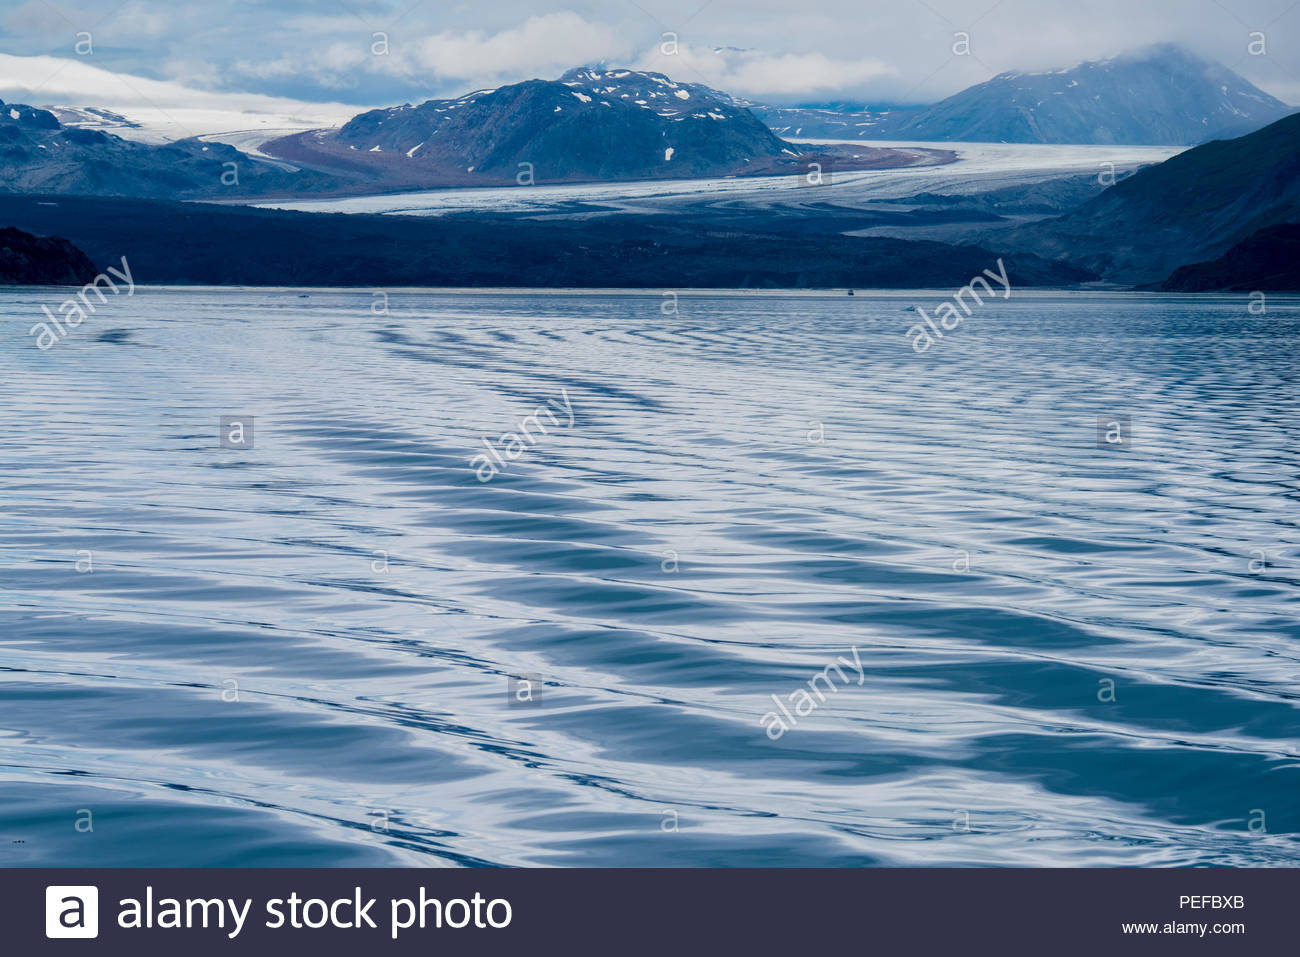 A view of the Grand Pacific Glacier from Tarr Inlet, Glacier Bay National Park. Stock Photo